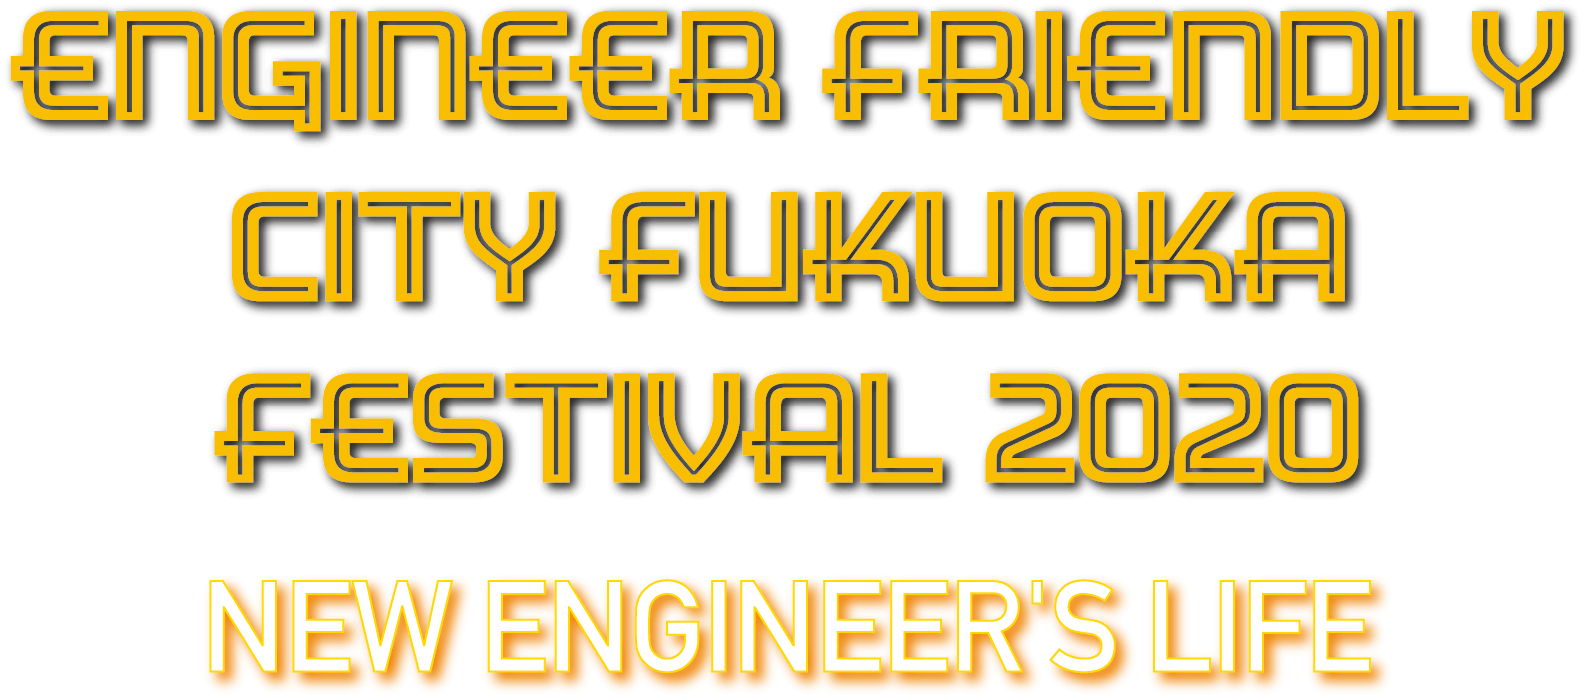 engineer friendry city fukuoka festival 2020